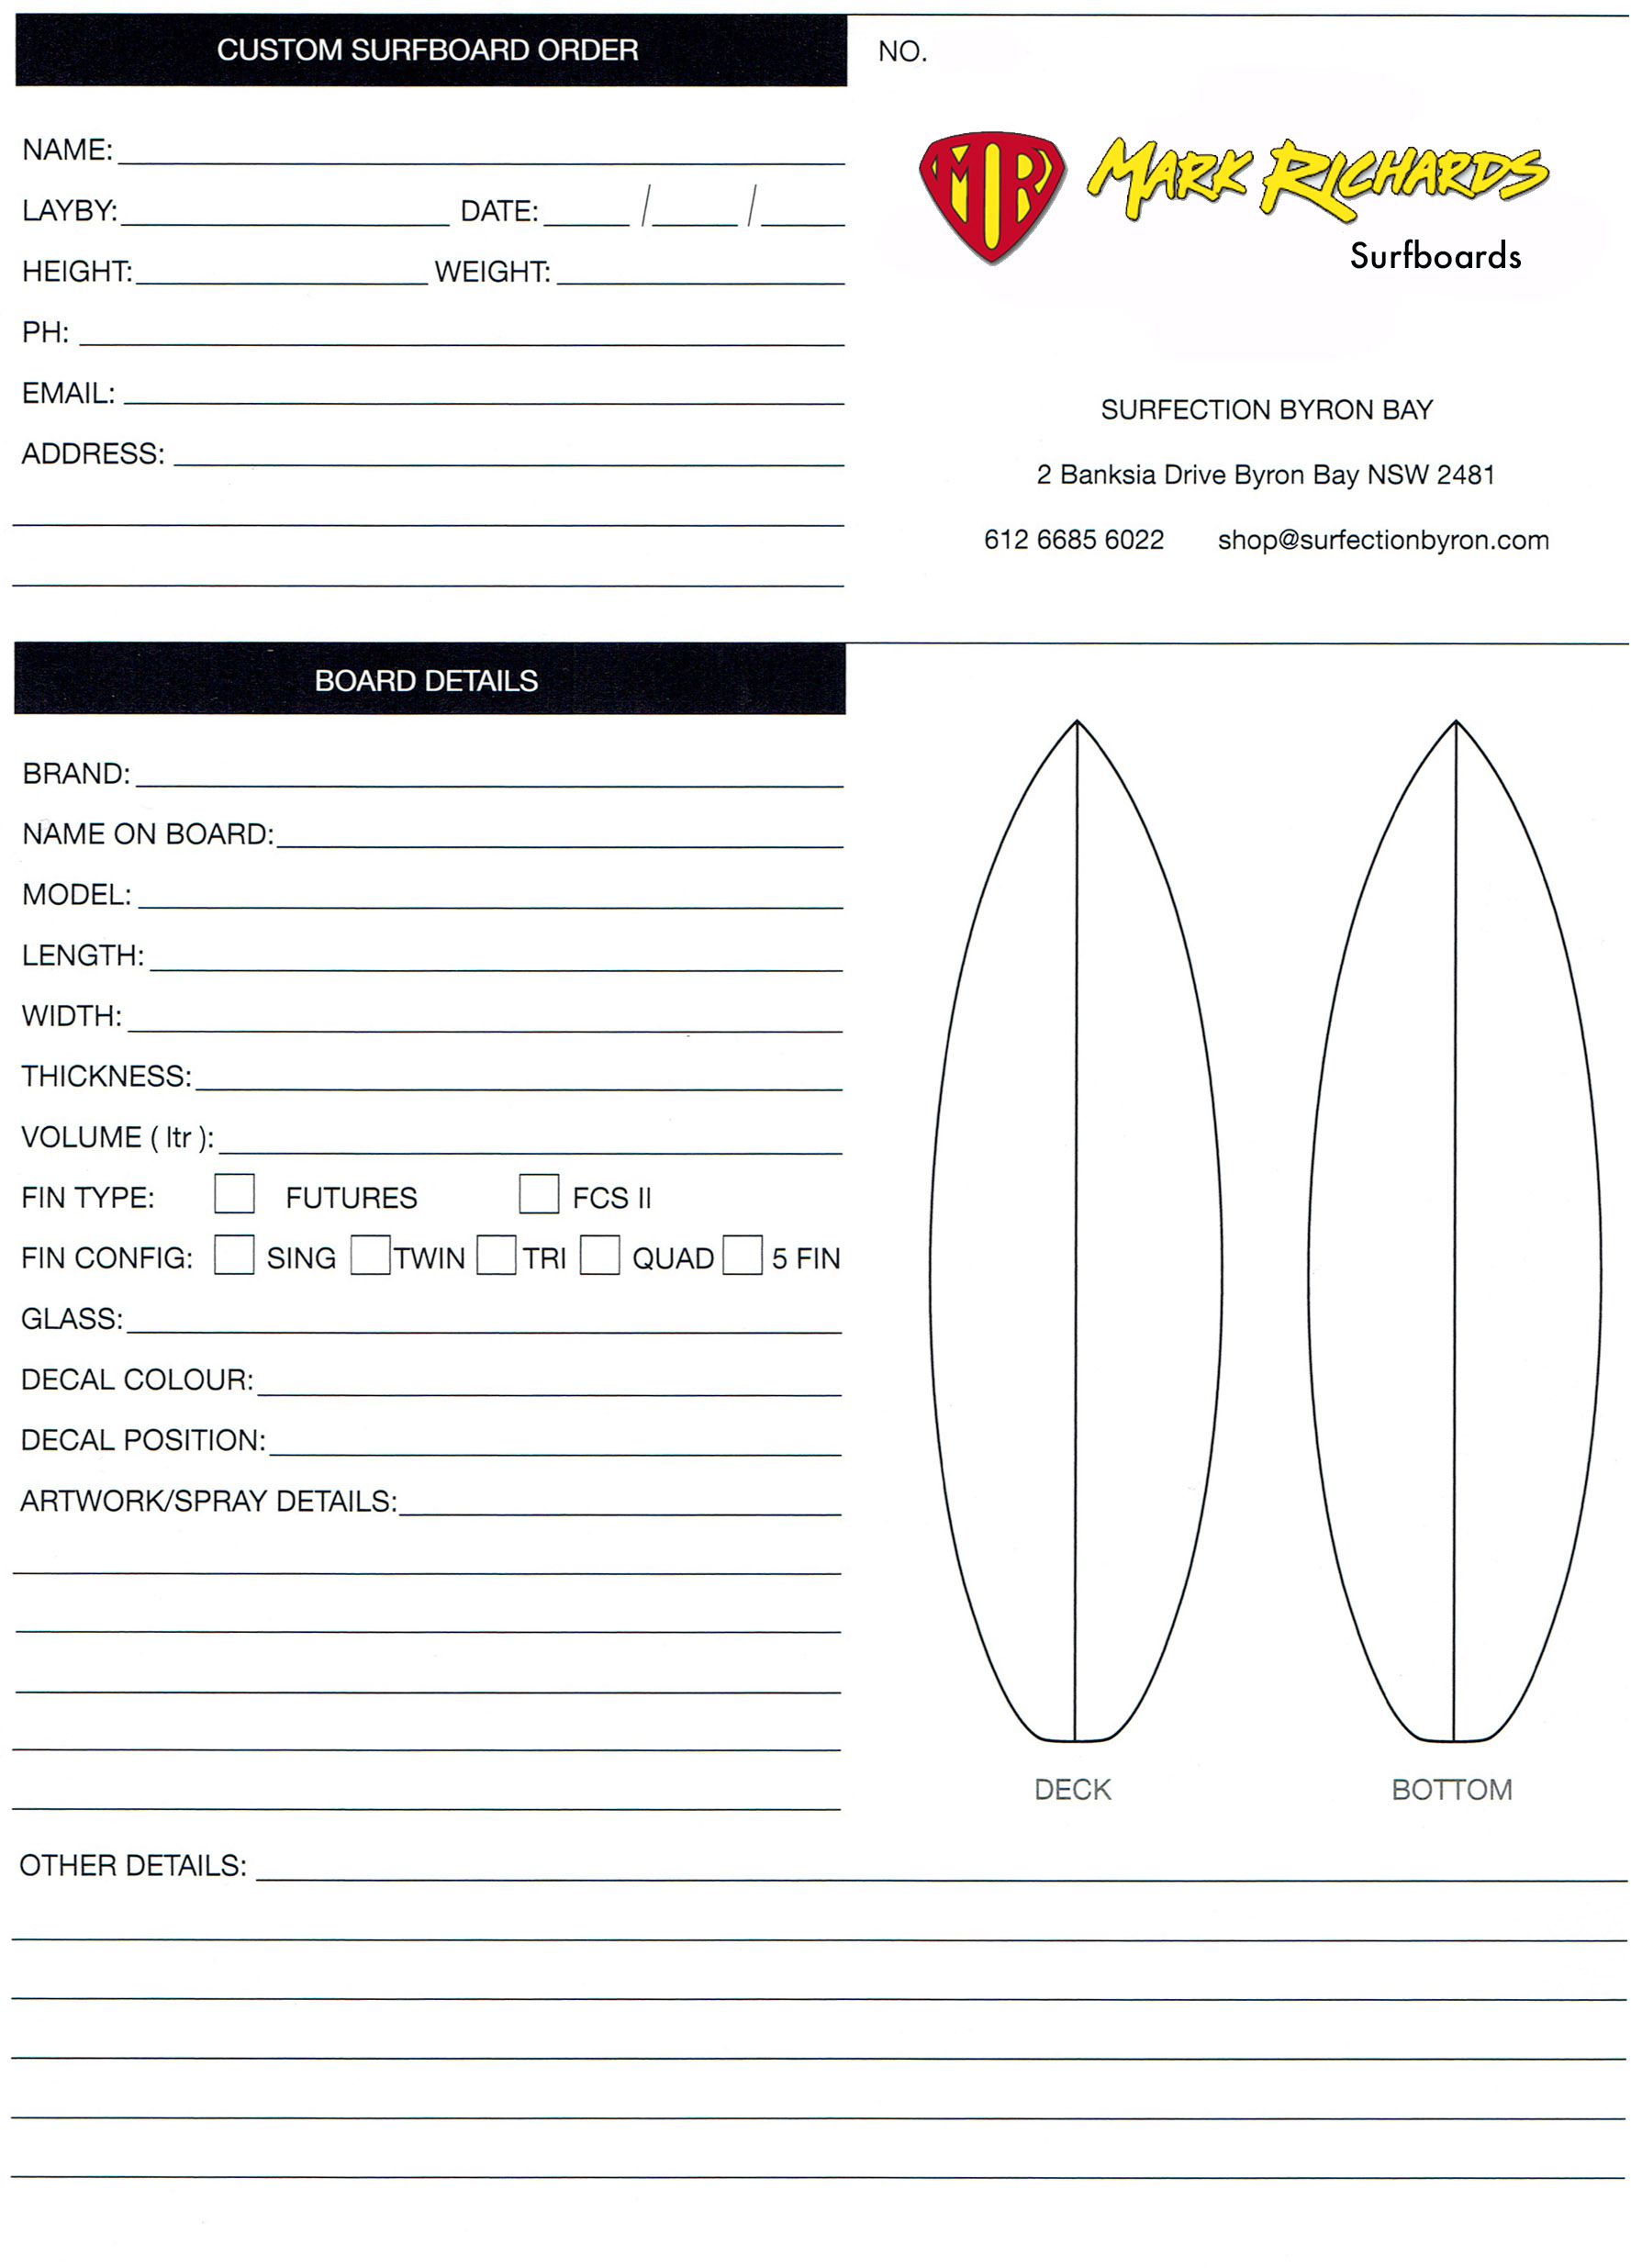 Fill out a custom order form - to get a quote on your own Mark Richard's Surfboard